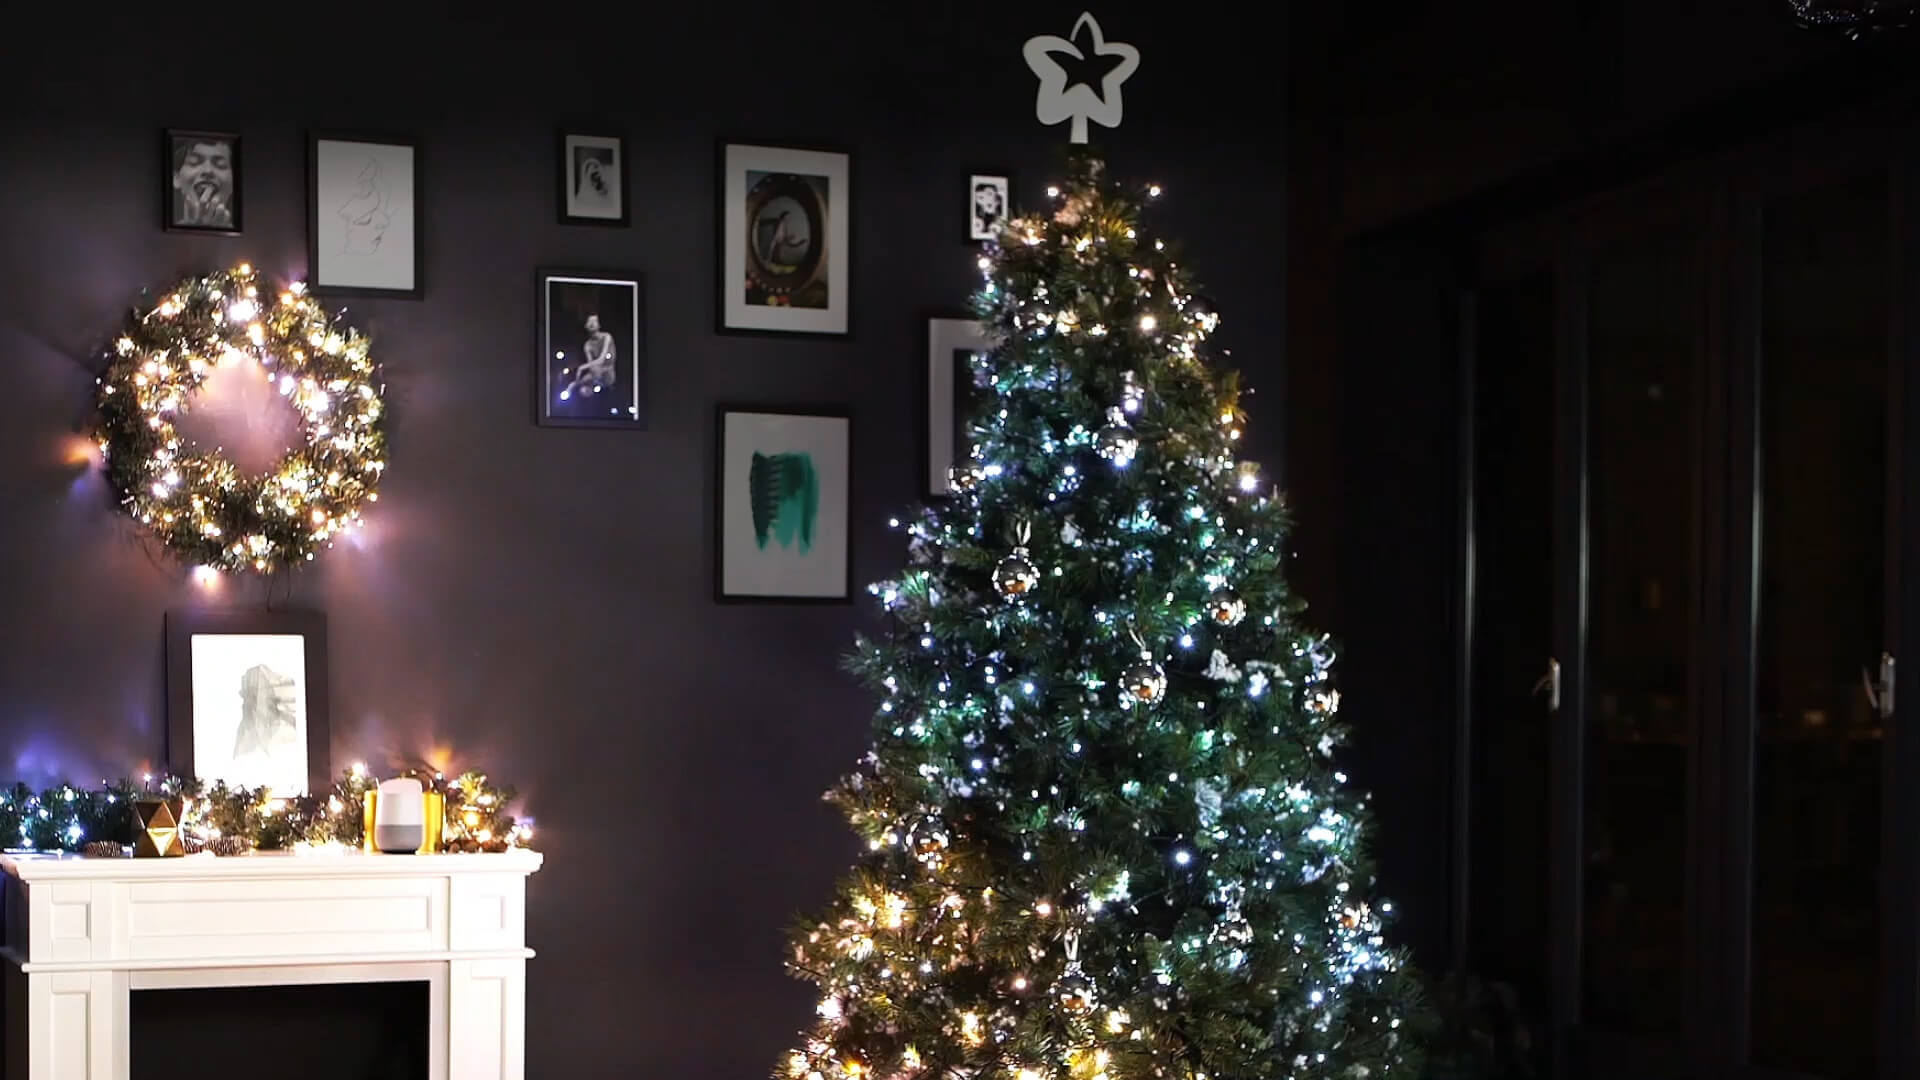 Home Twinkly